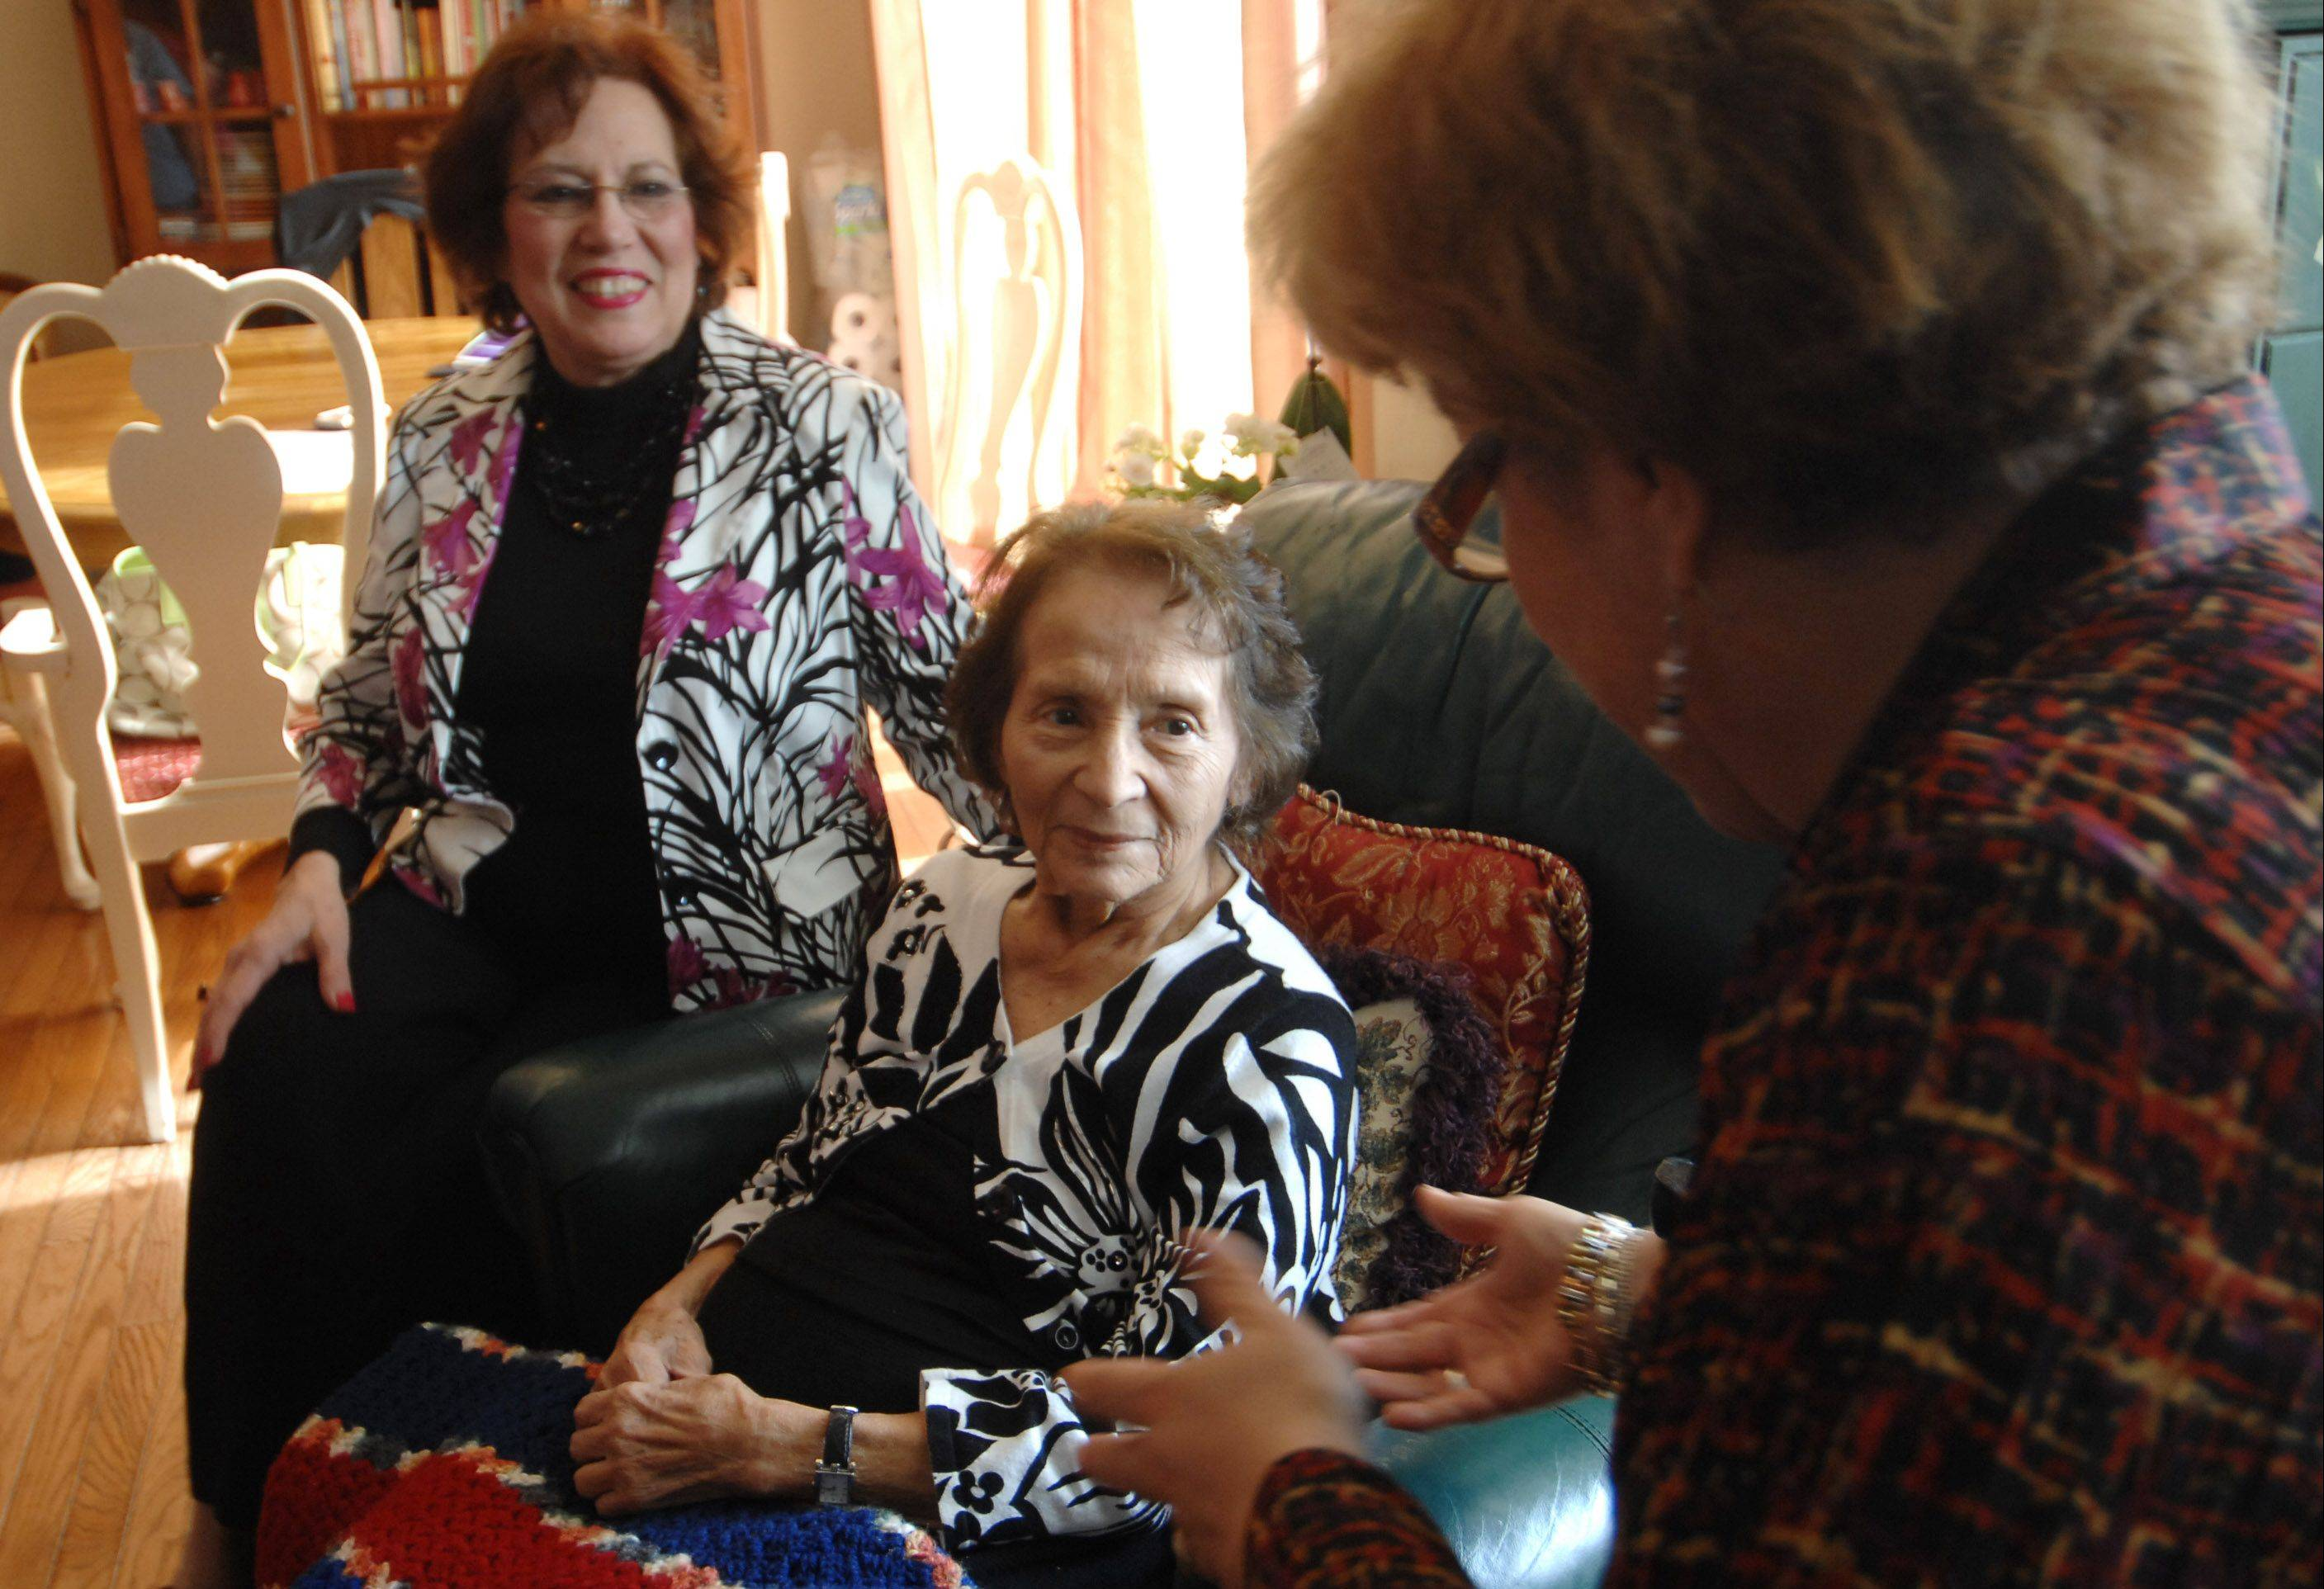 Maria Alvarez, 96, is a hospice patient in West Dundee. She is one of less than 6 percent of all hospice patients nationwide who are Latino. She is with her niece, also Maria, left, and granddaughter Maritza Ramirez.